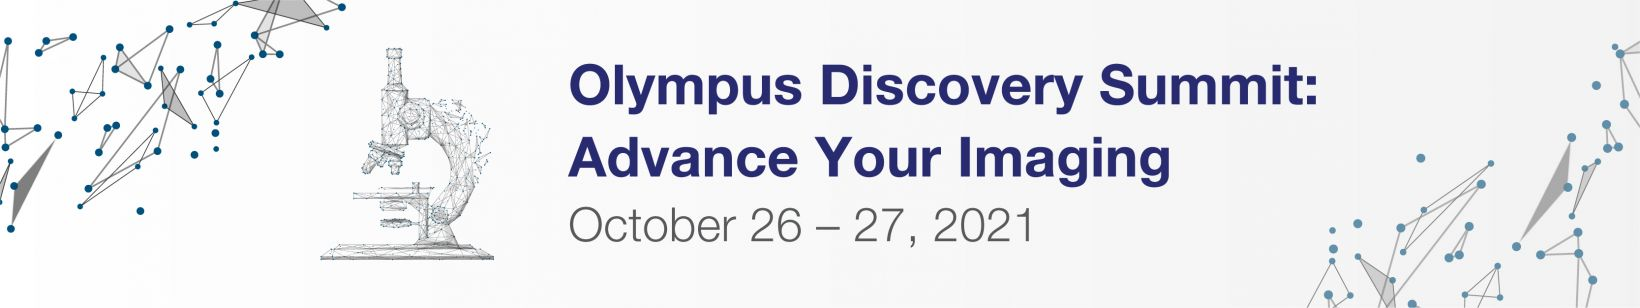 Olympus Discovery Summit: Advance Your Imaging